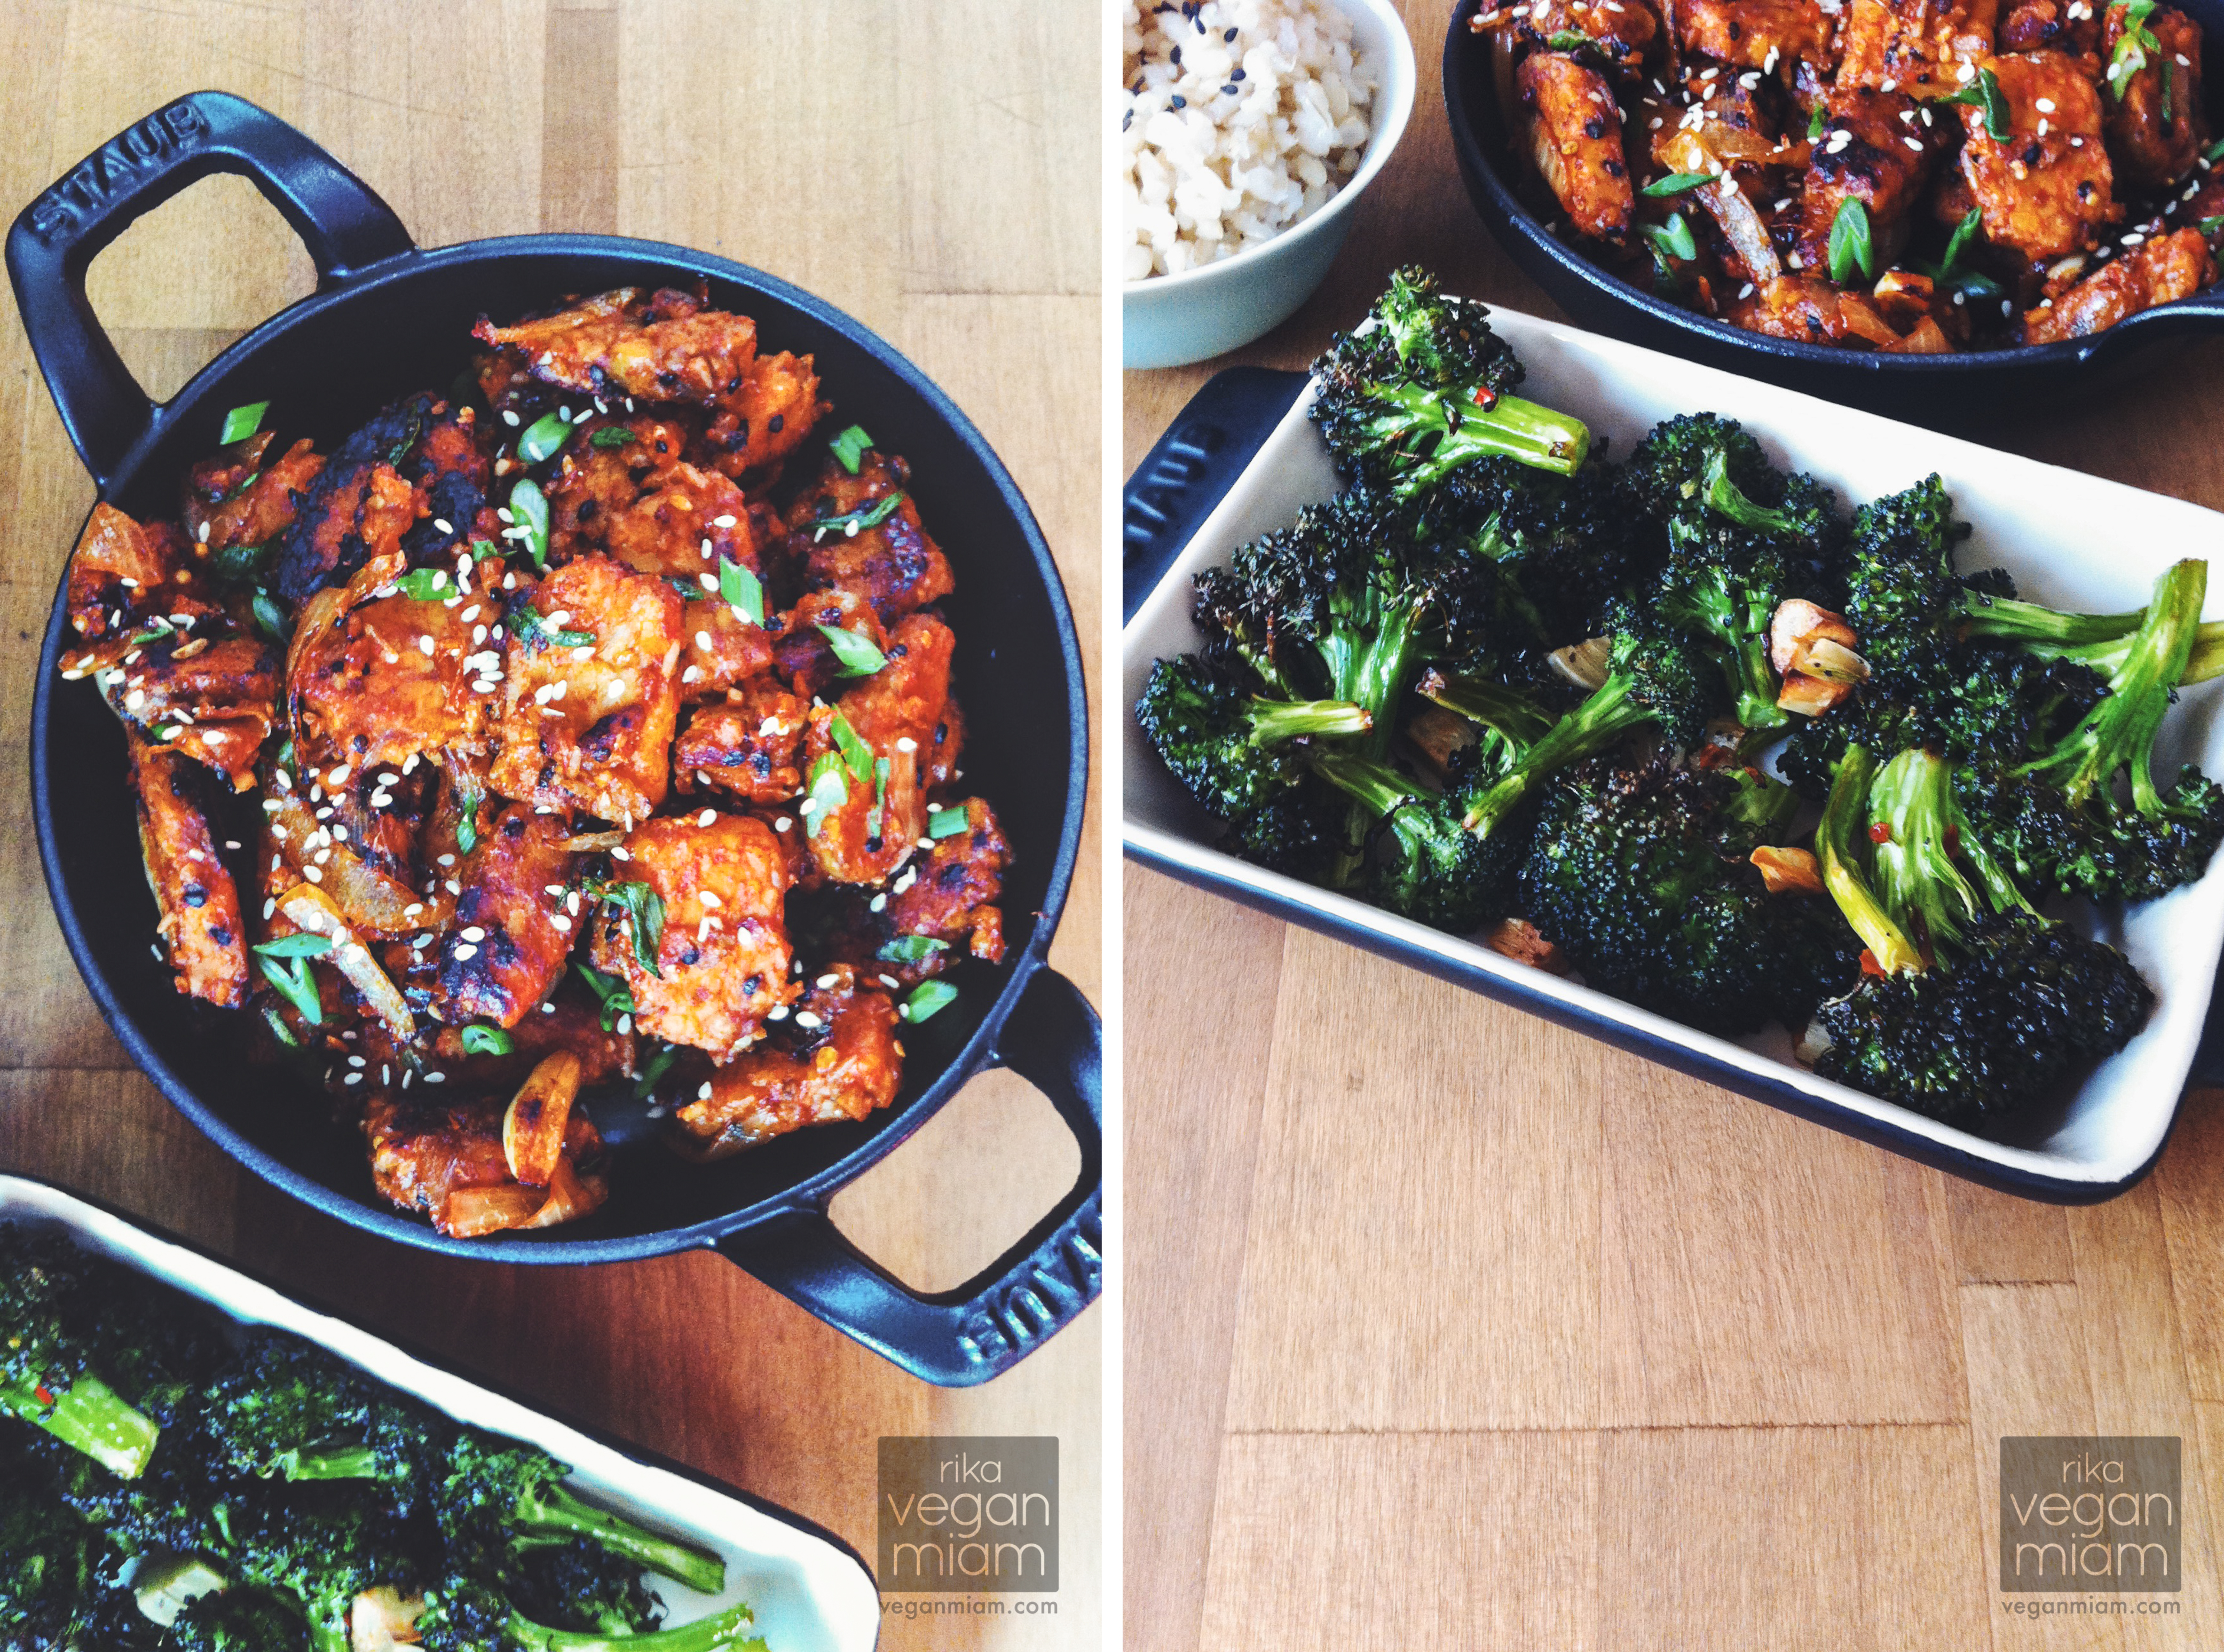 Gochujang Tempeh + Blasted Broccoli